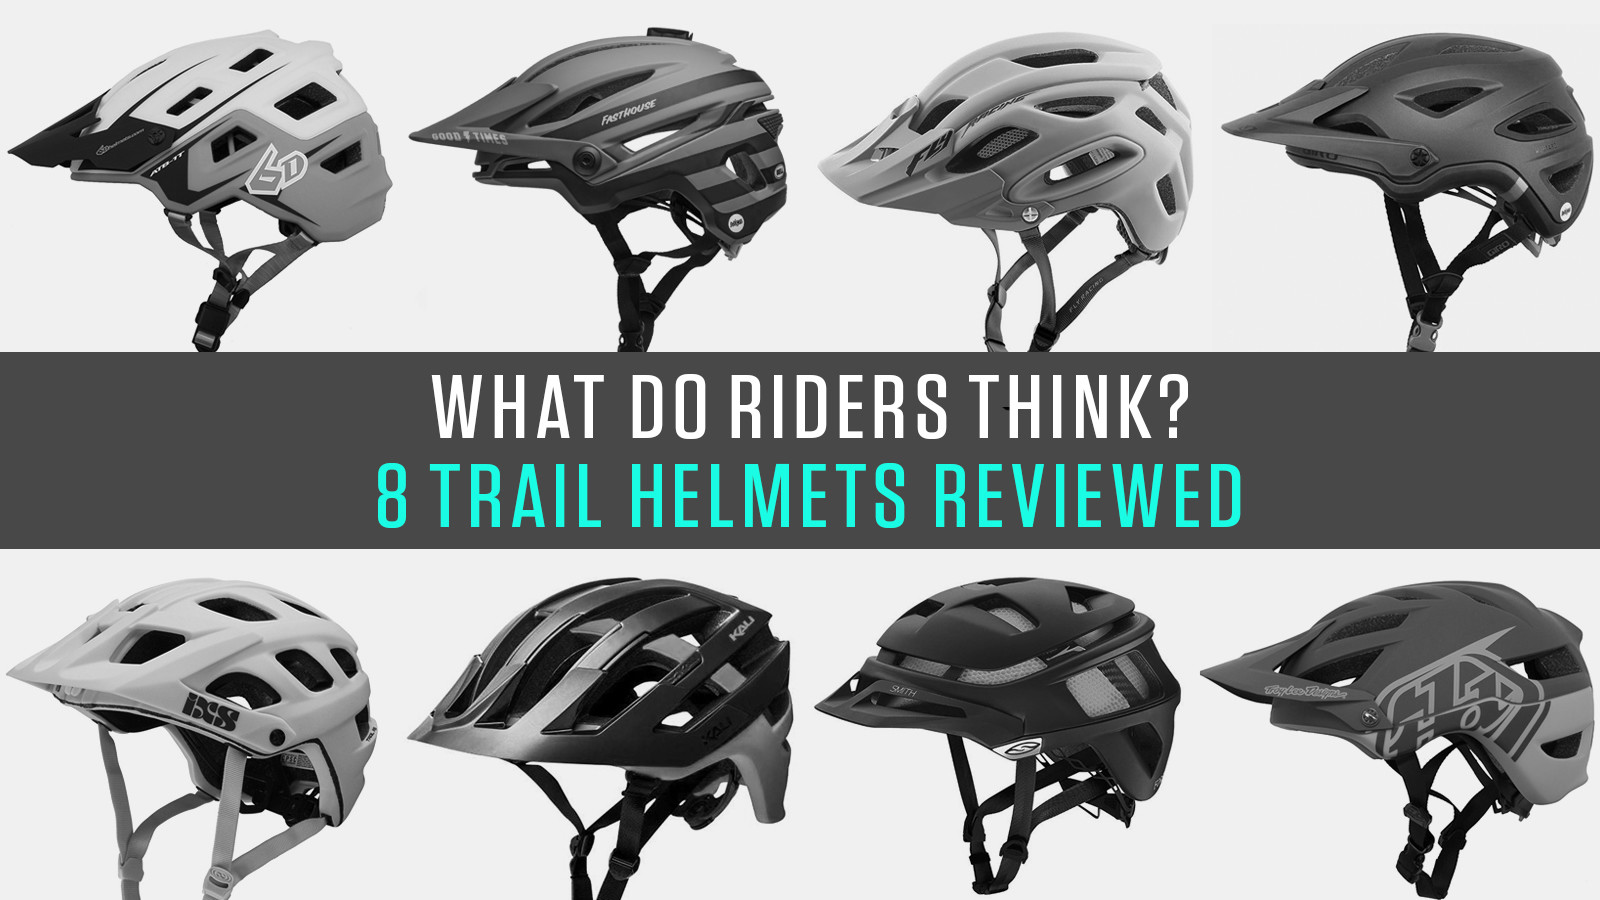 What Do Riders Think? Eight Half-Shell Helmets Reviewed by Vital MTB Members